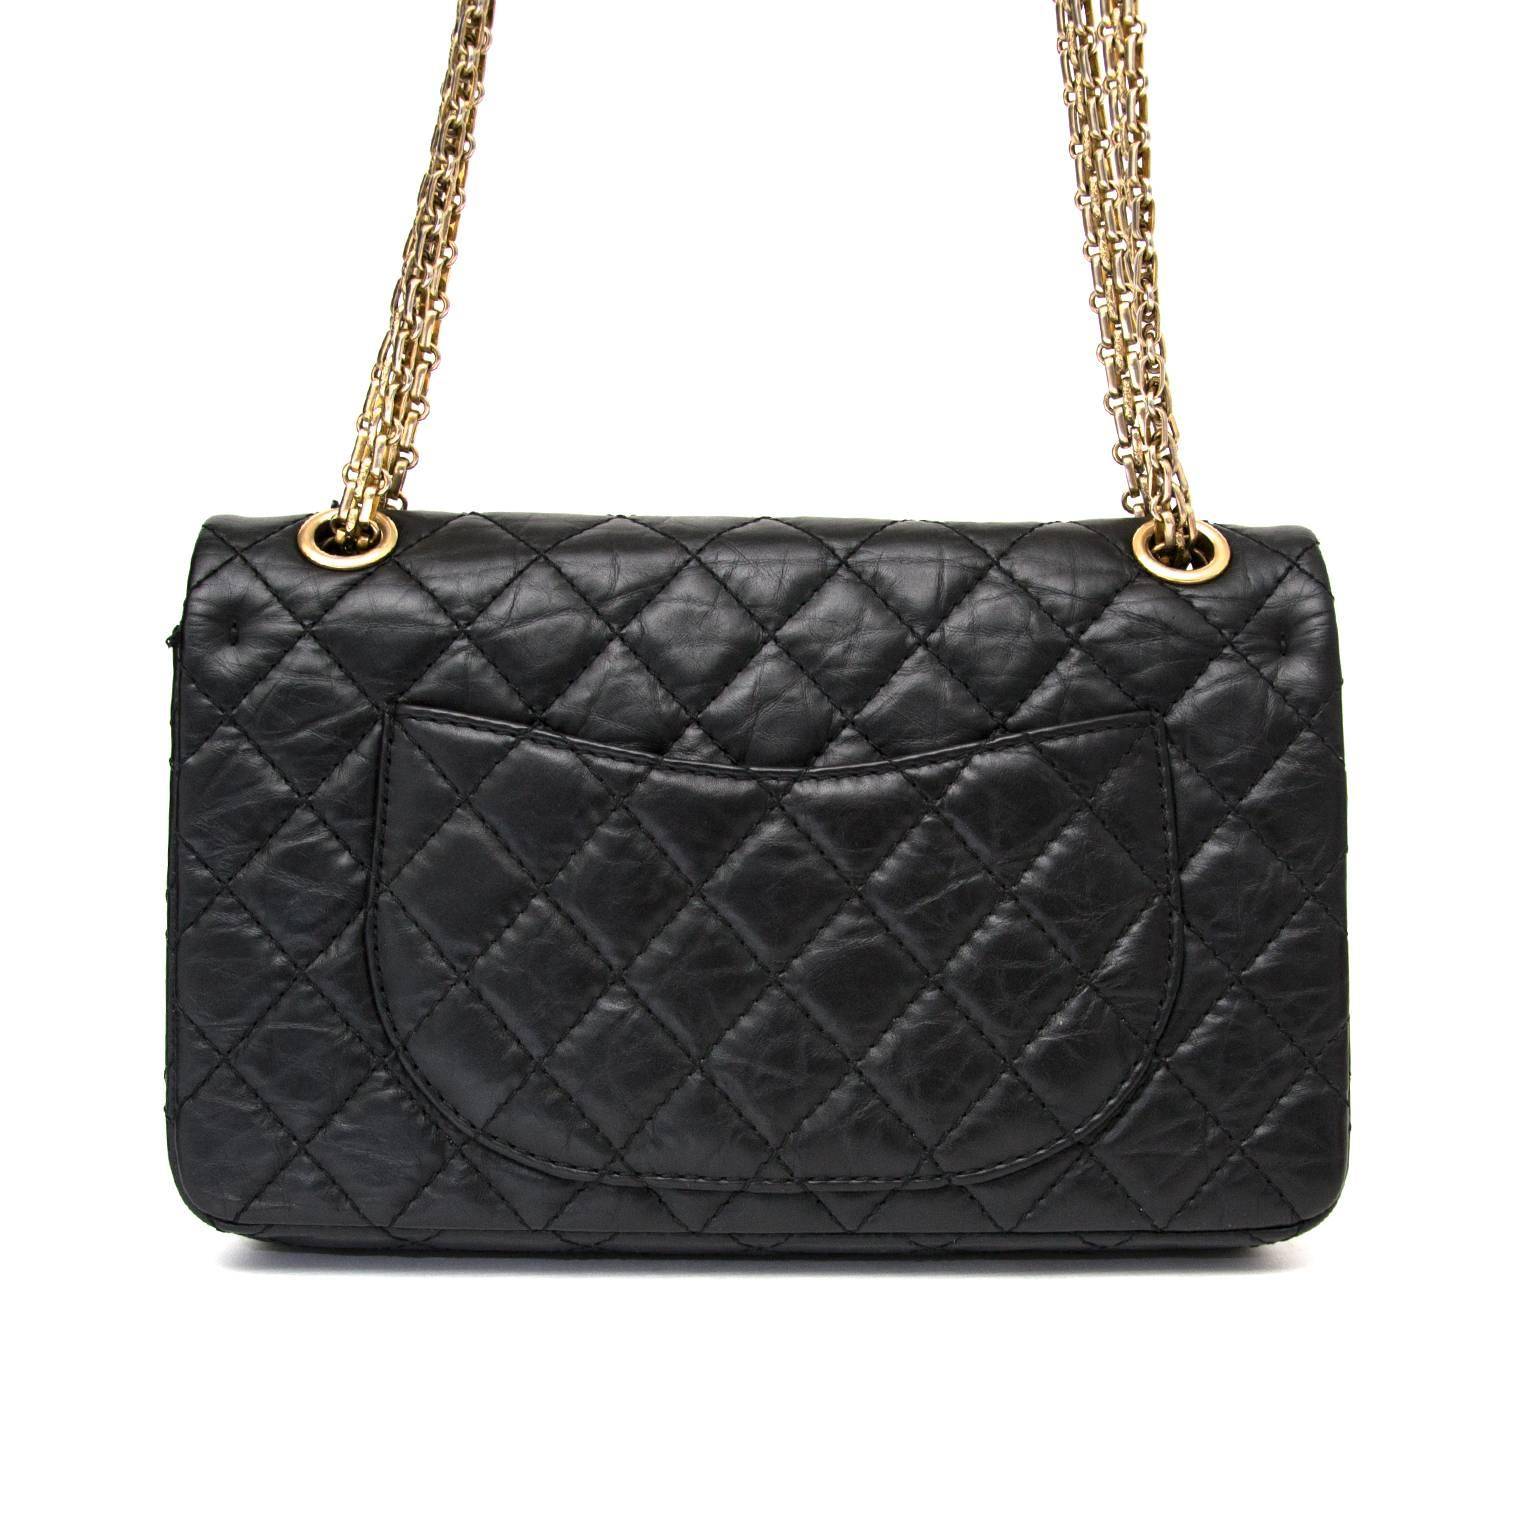 fc868c5137f3 Chanel 2.55 Reissue 225 Double Flap Bag in Black at 1stdibs